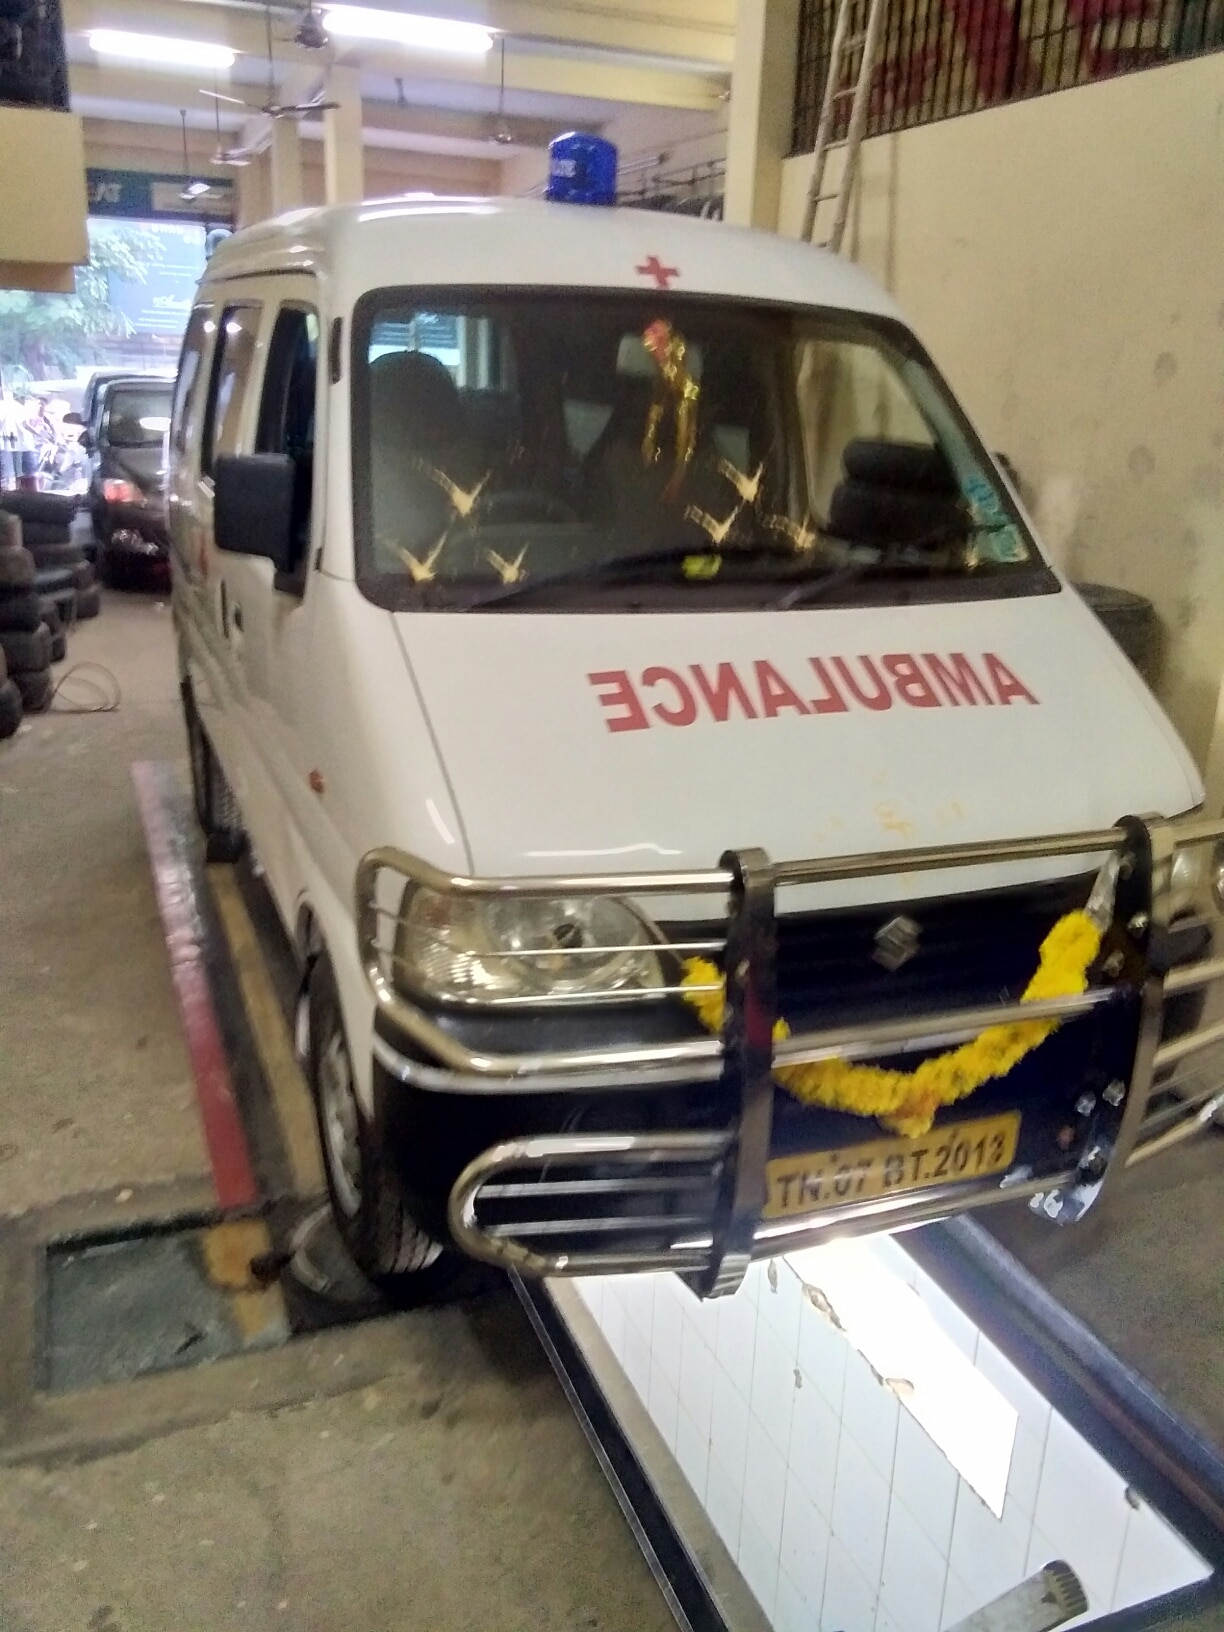 Indian ambulance service Chennai  mini ambulance  9841986467